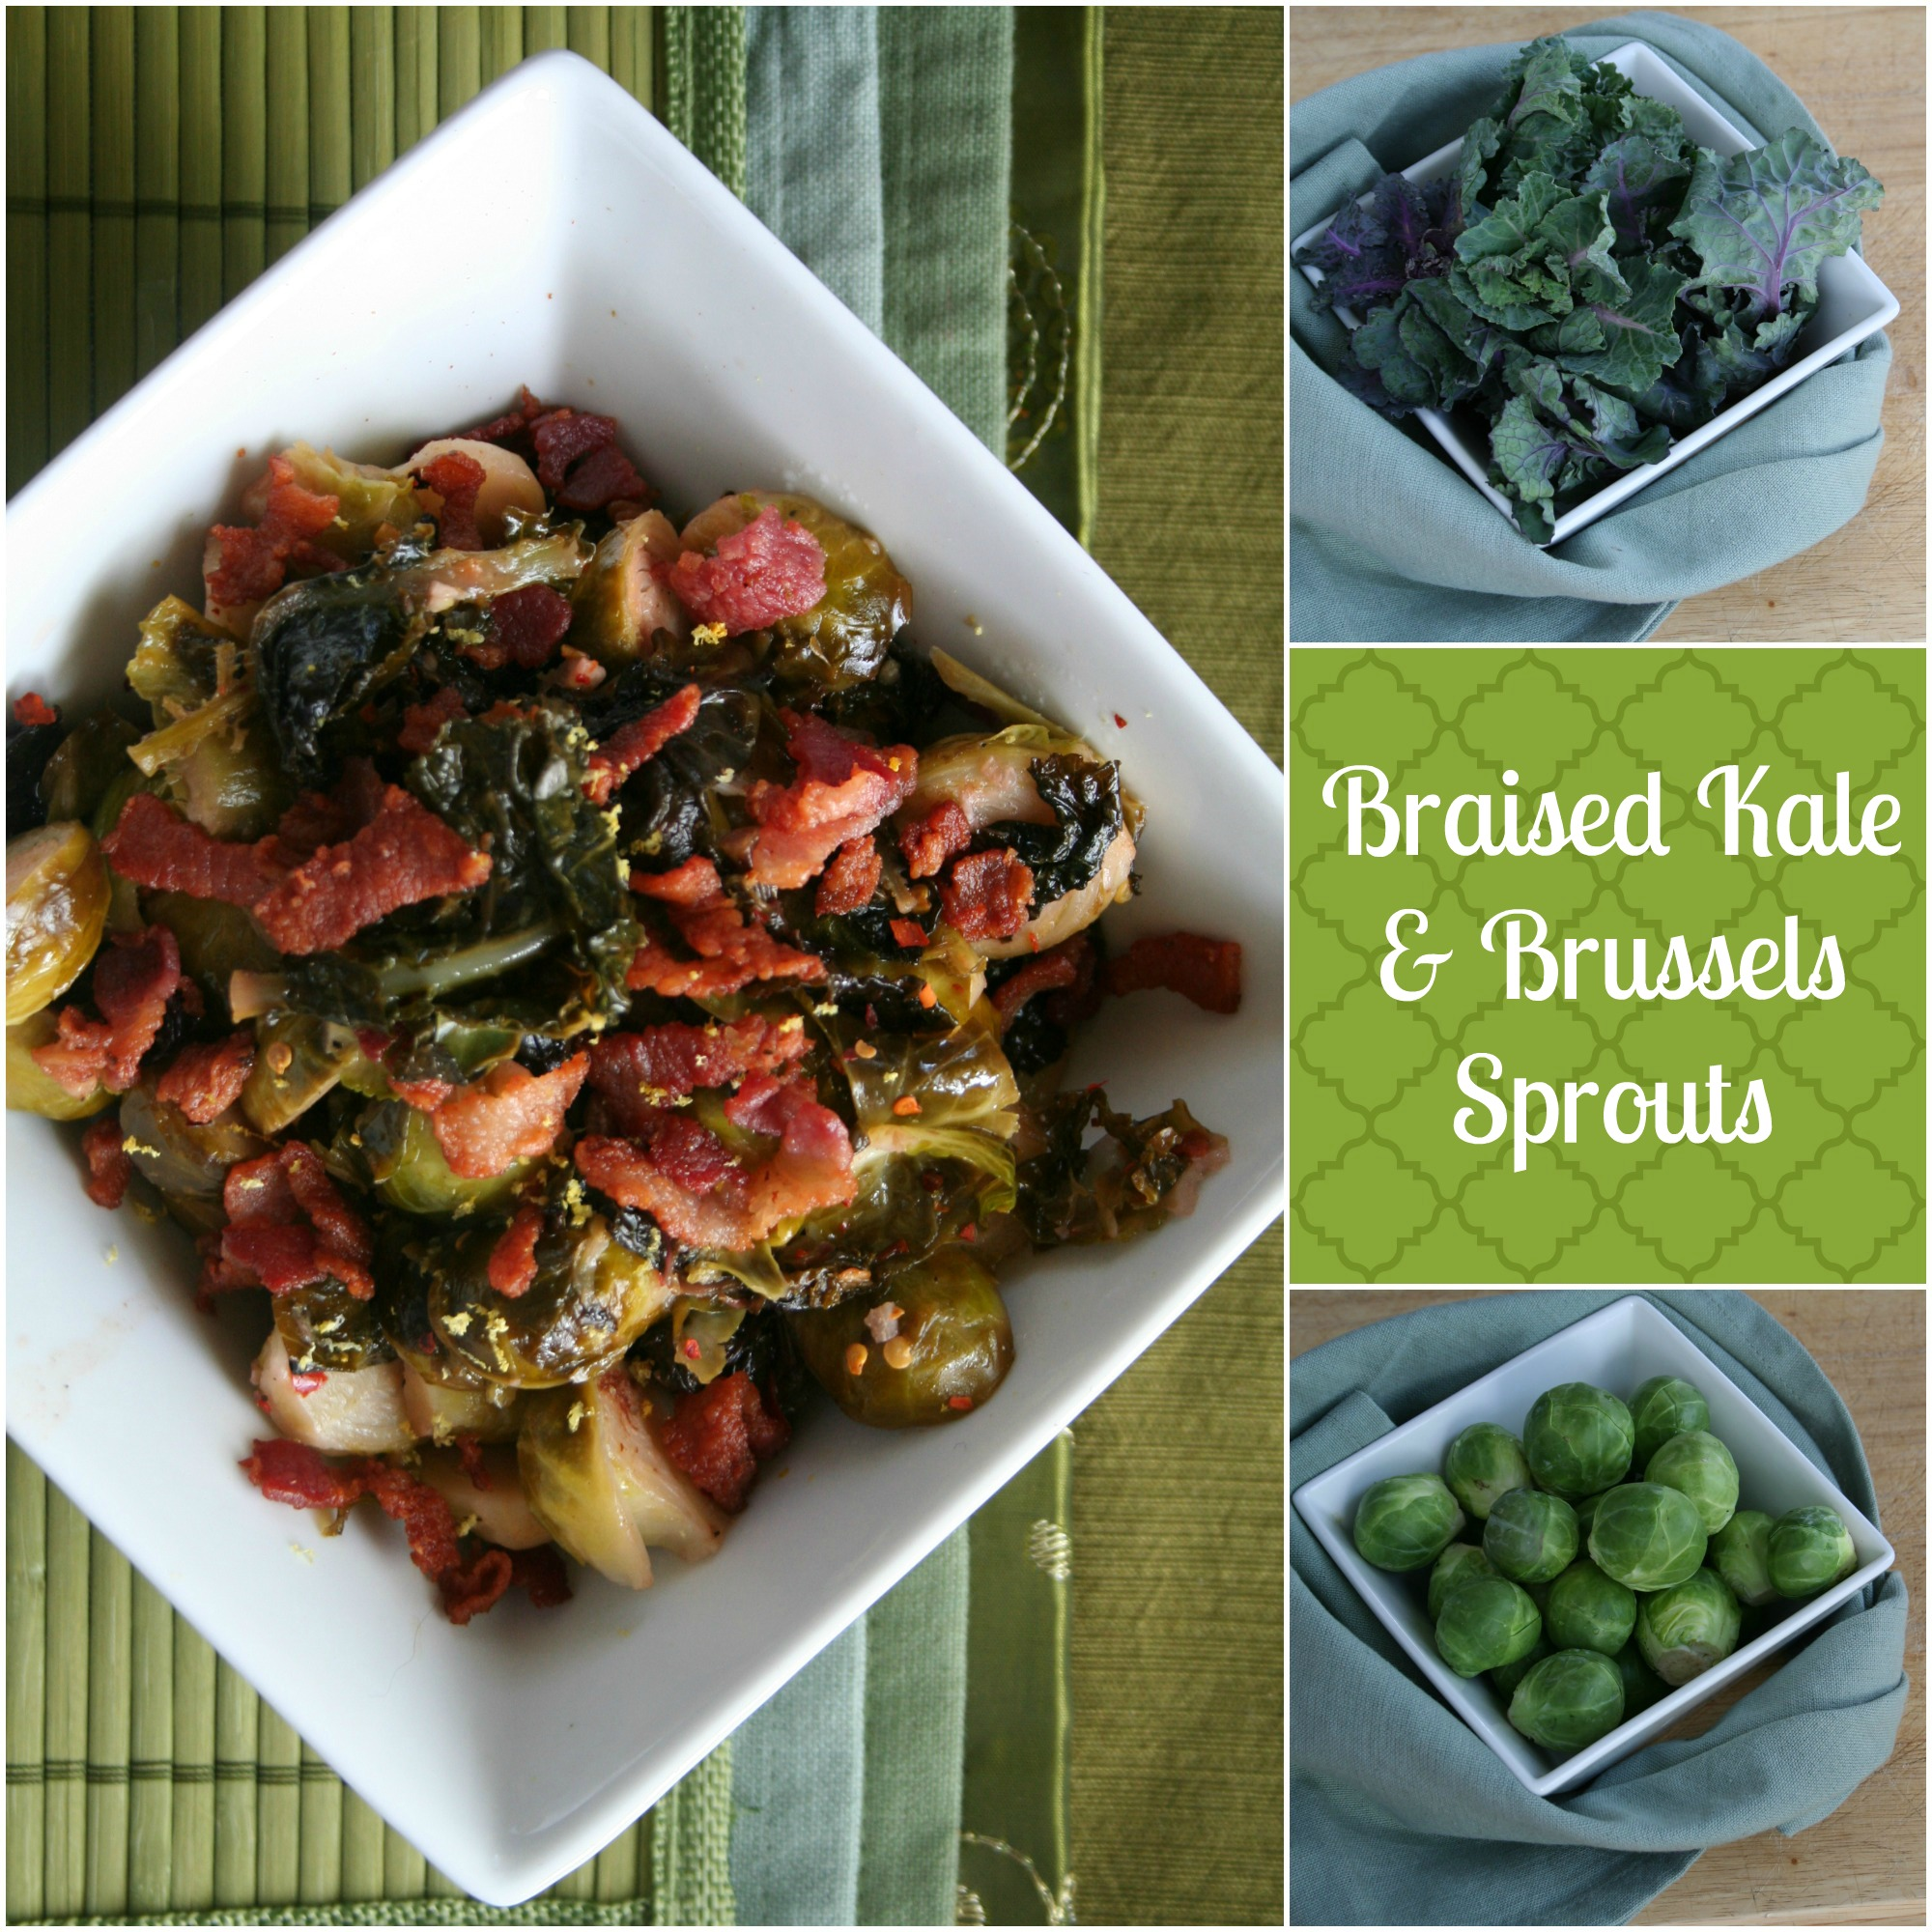 Briased Kale & Brussels Sprouts